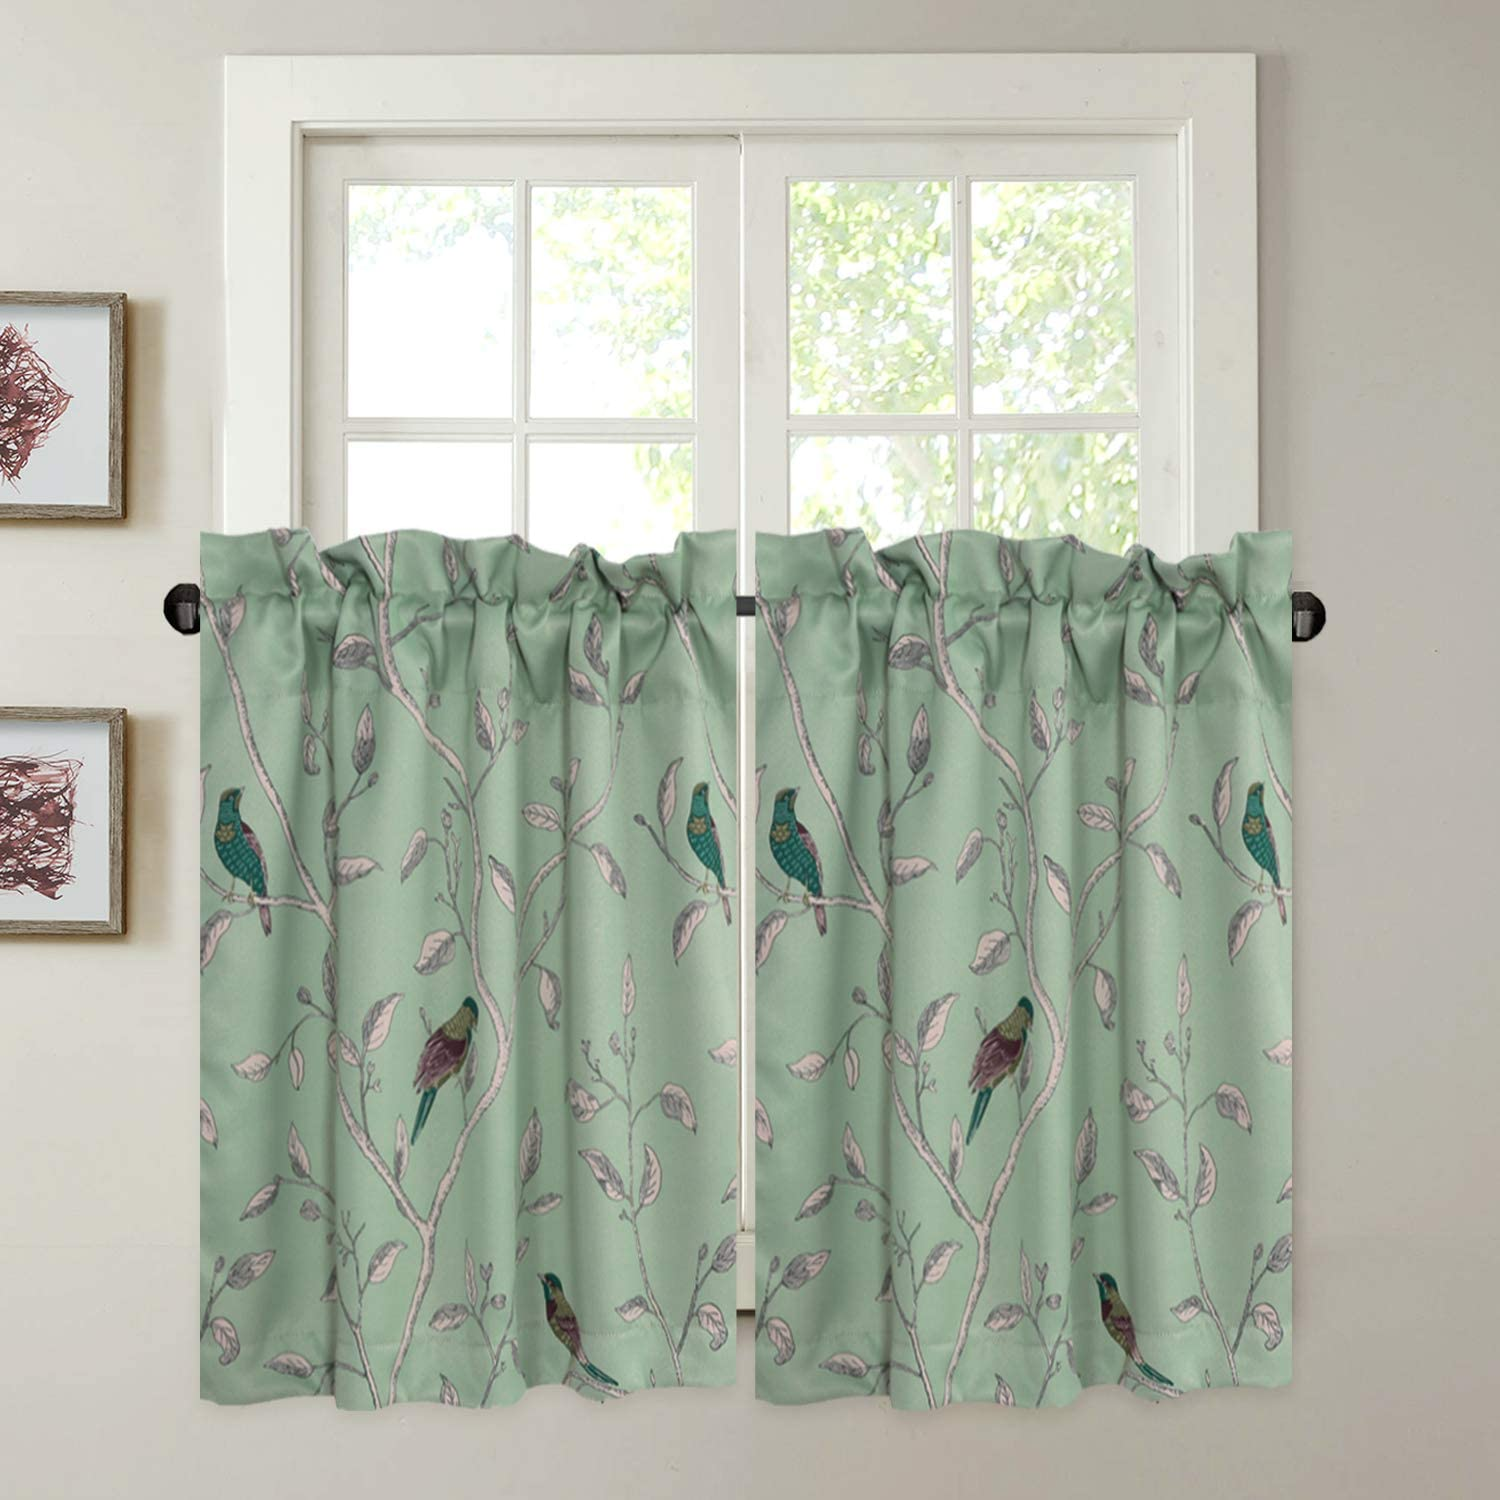 H.VERSAILTEX Ultra Soft Textured Woven Kitchen Curtains, Rod Pocket Window  Curtain Tiers for Café/Bath/Laundry/Bedroom - Sage Base with Turquoise ...